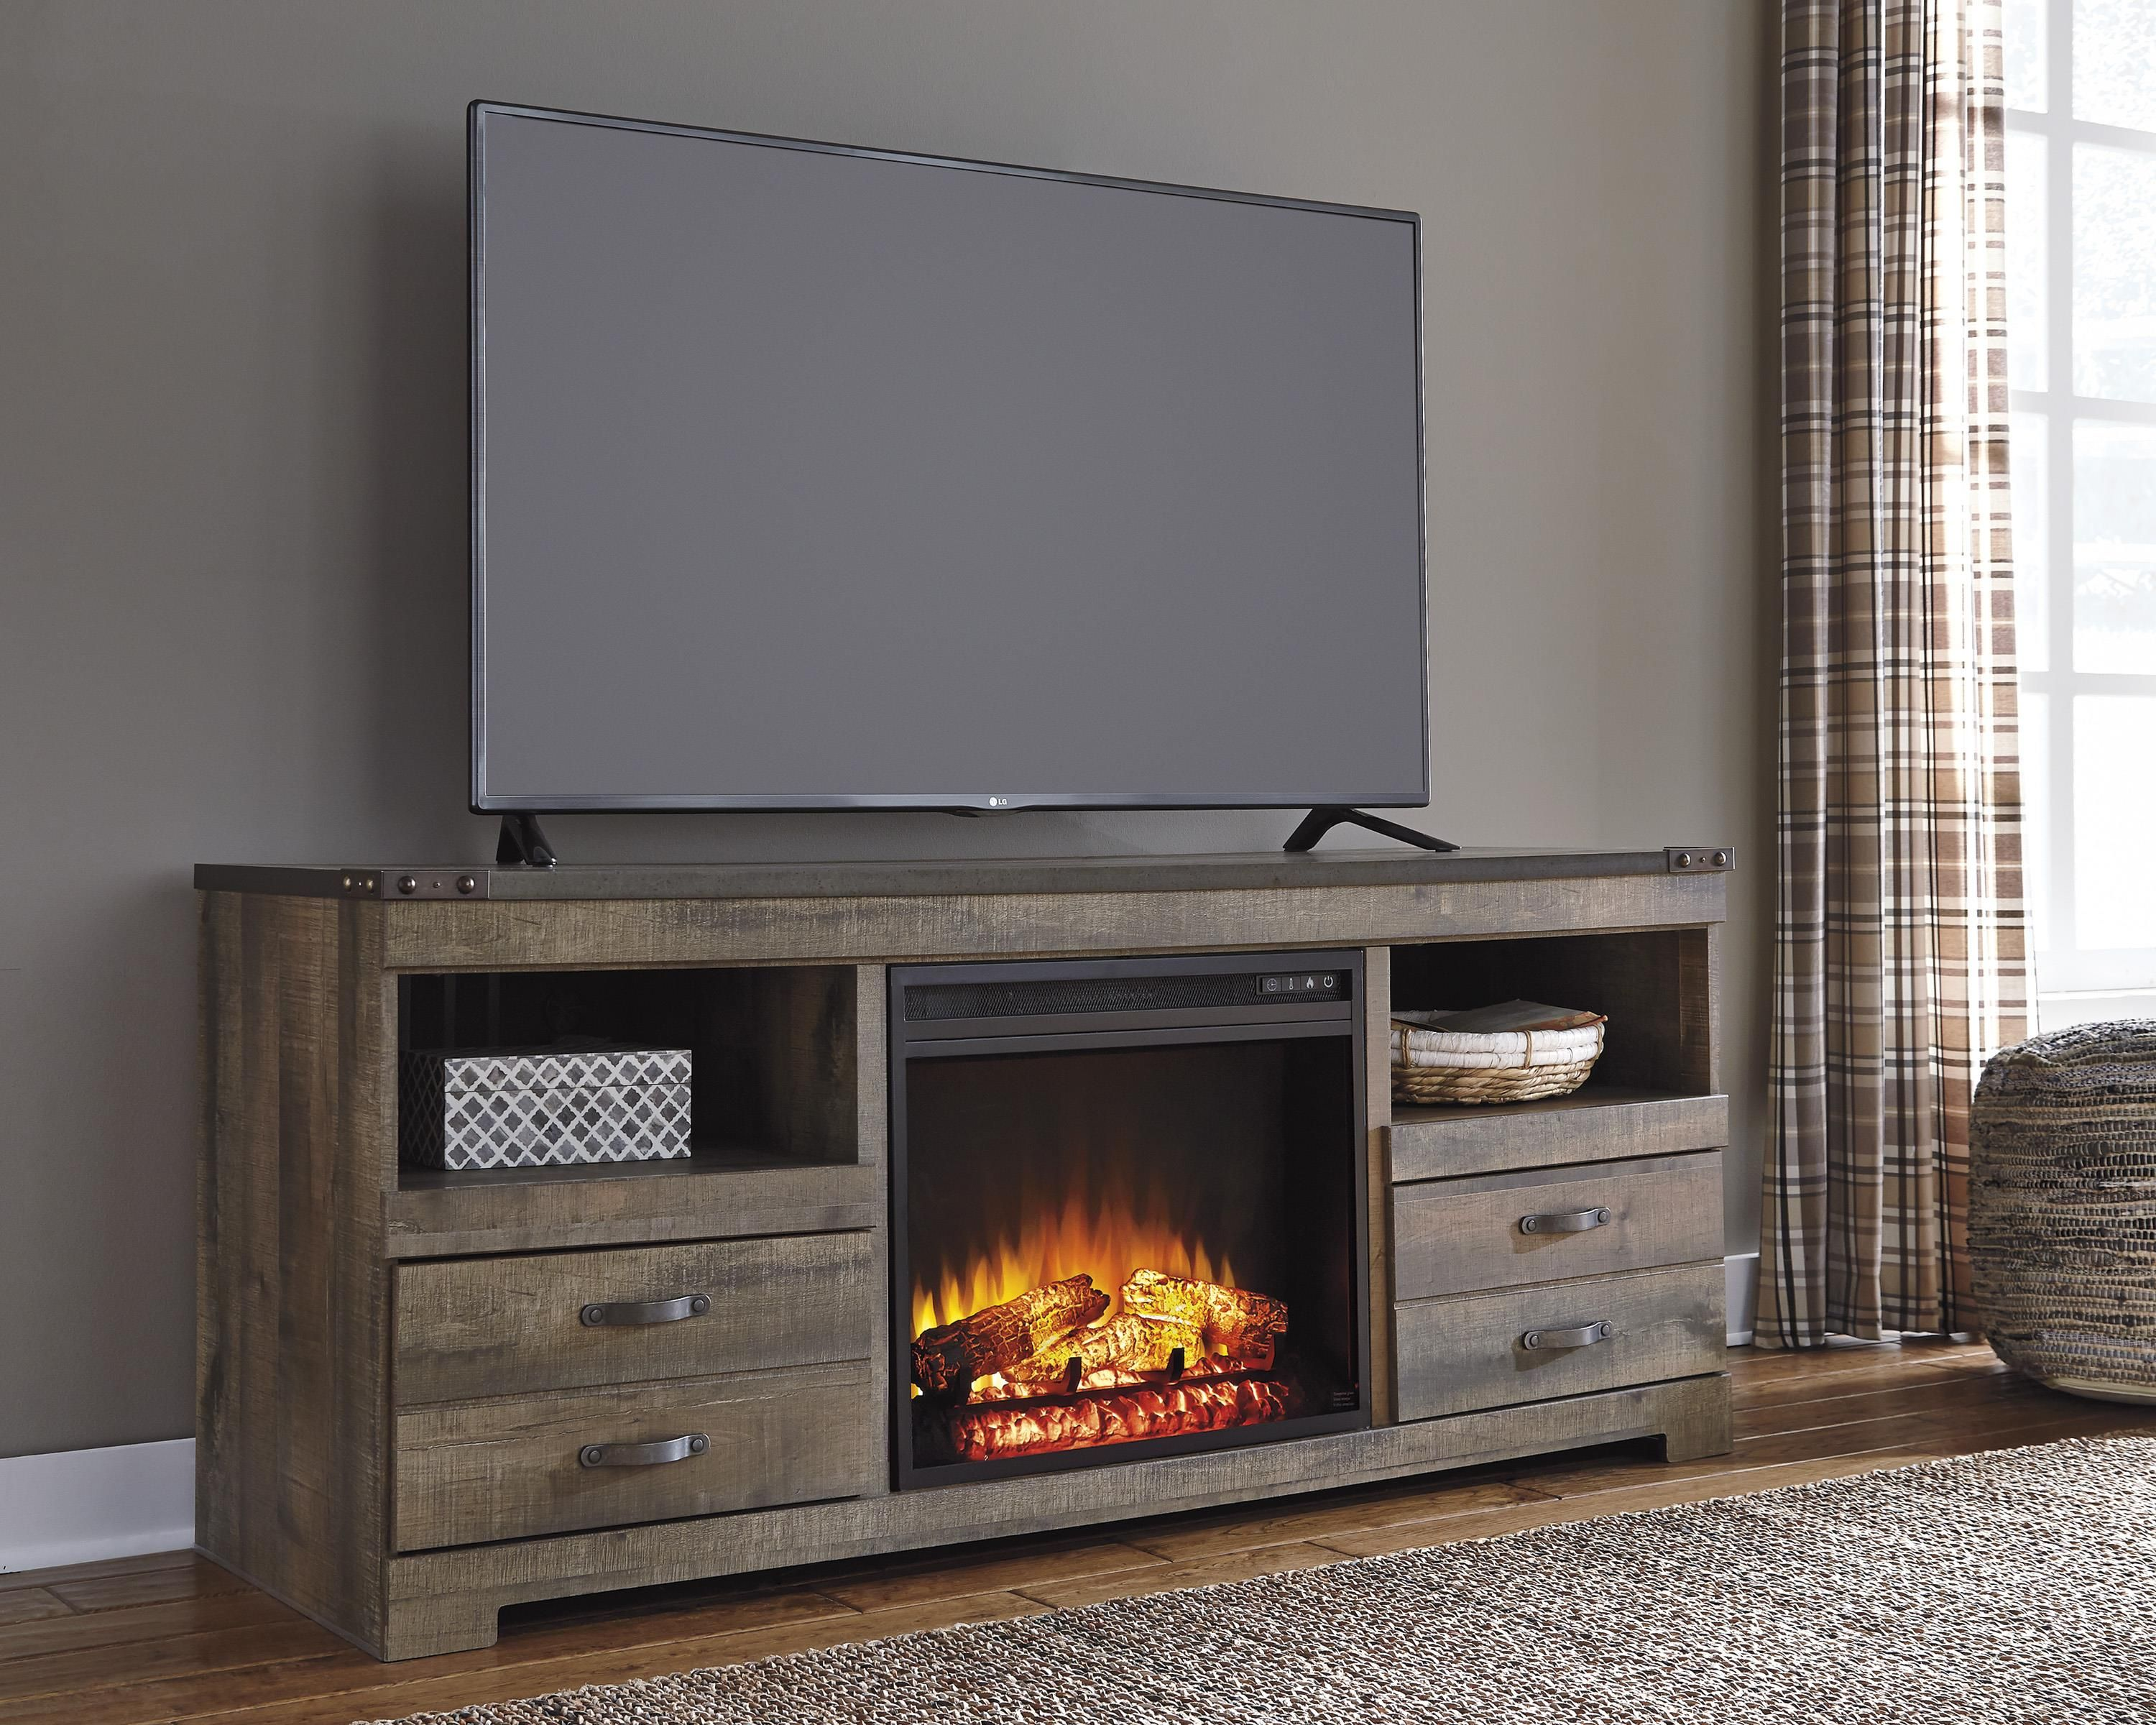 Replicated oak grain takes the look of rustic reclaimed wood on this large TV stand with an electric fireplace insert. Its top metal banding with rivet look at the corners and simple metal drawer hardware amplifies the cool character of the TV stand. Plen